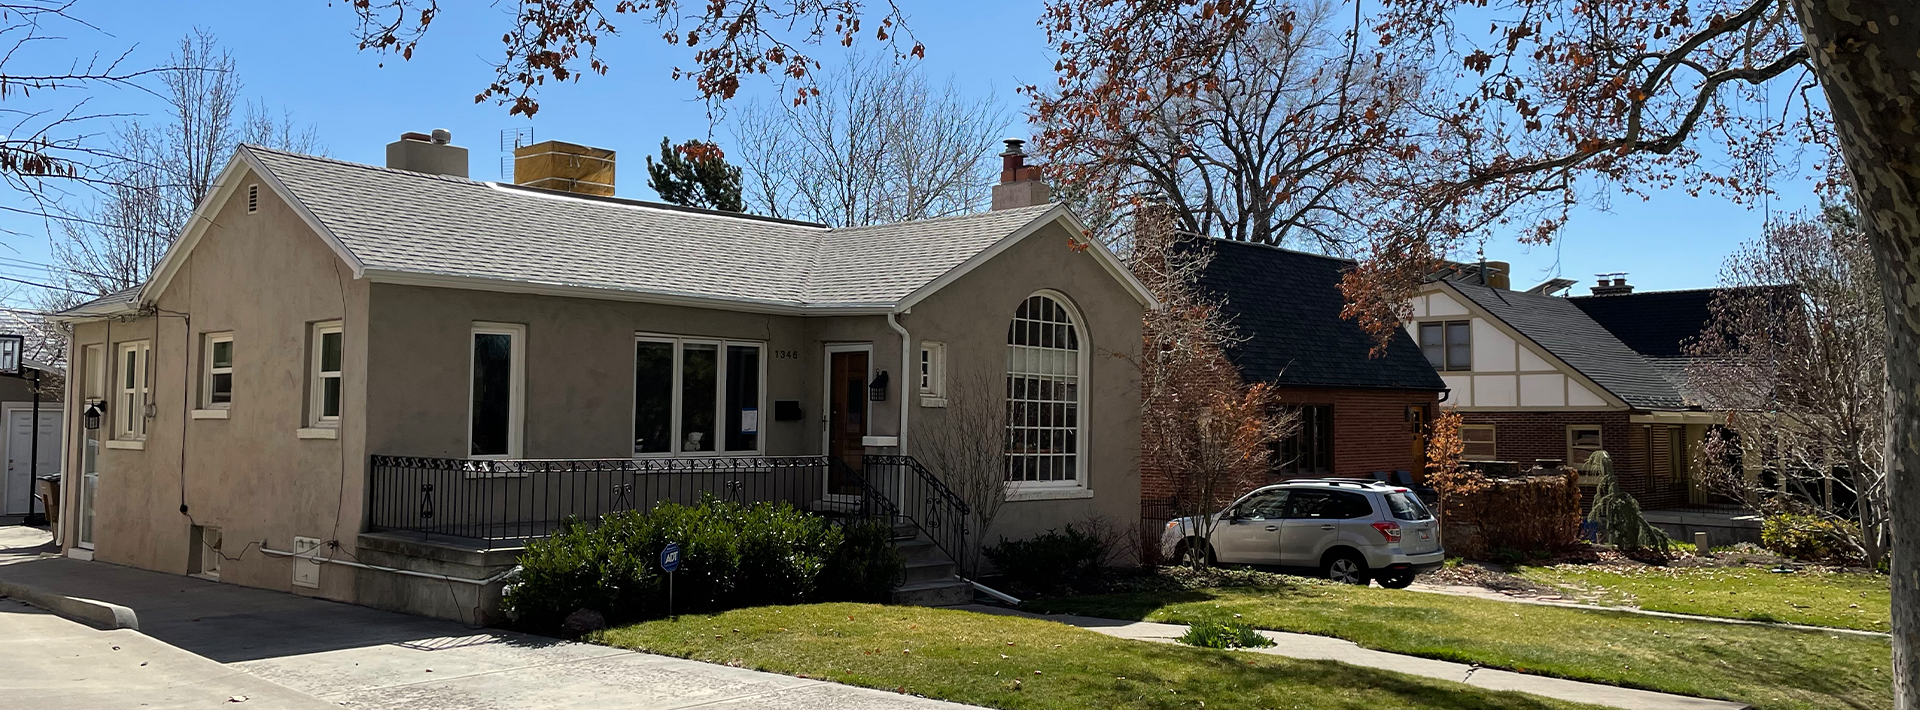 finish pic salt lake city roofing near me avenues finished 2